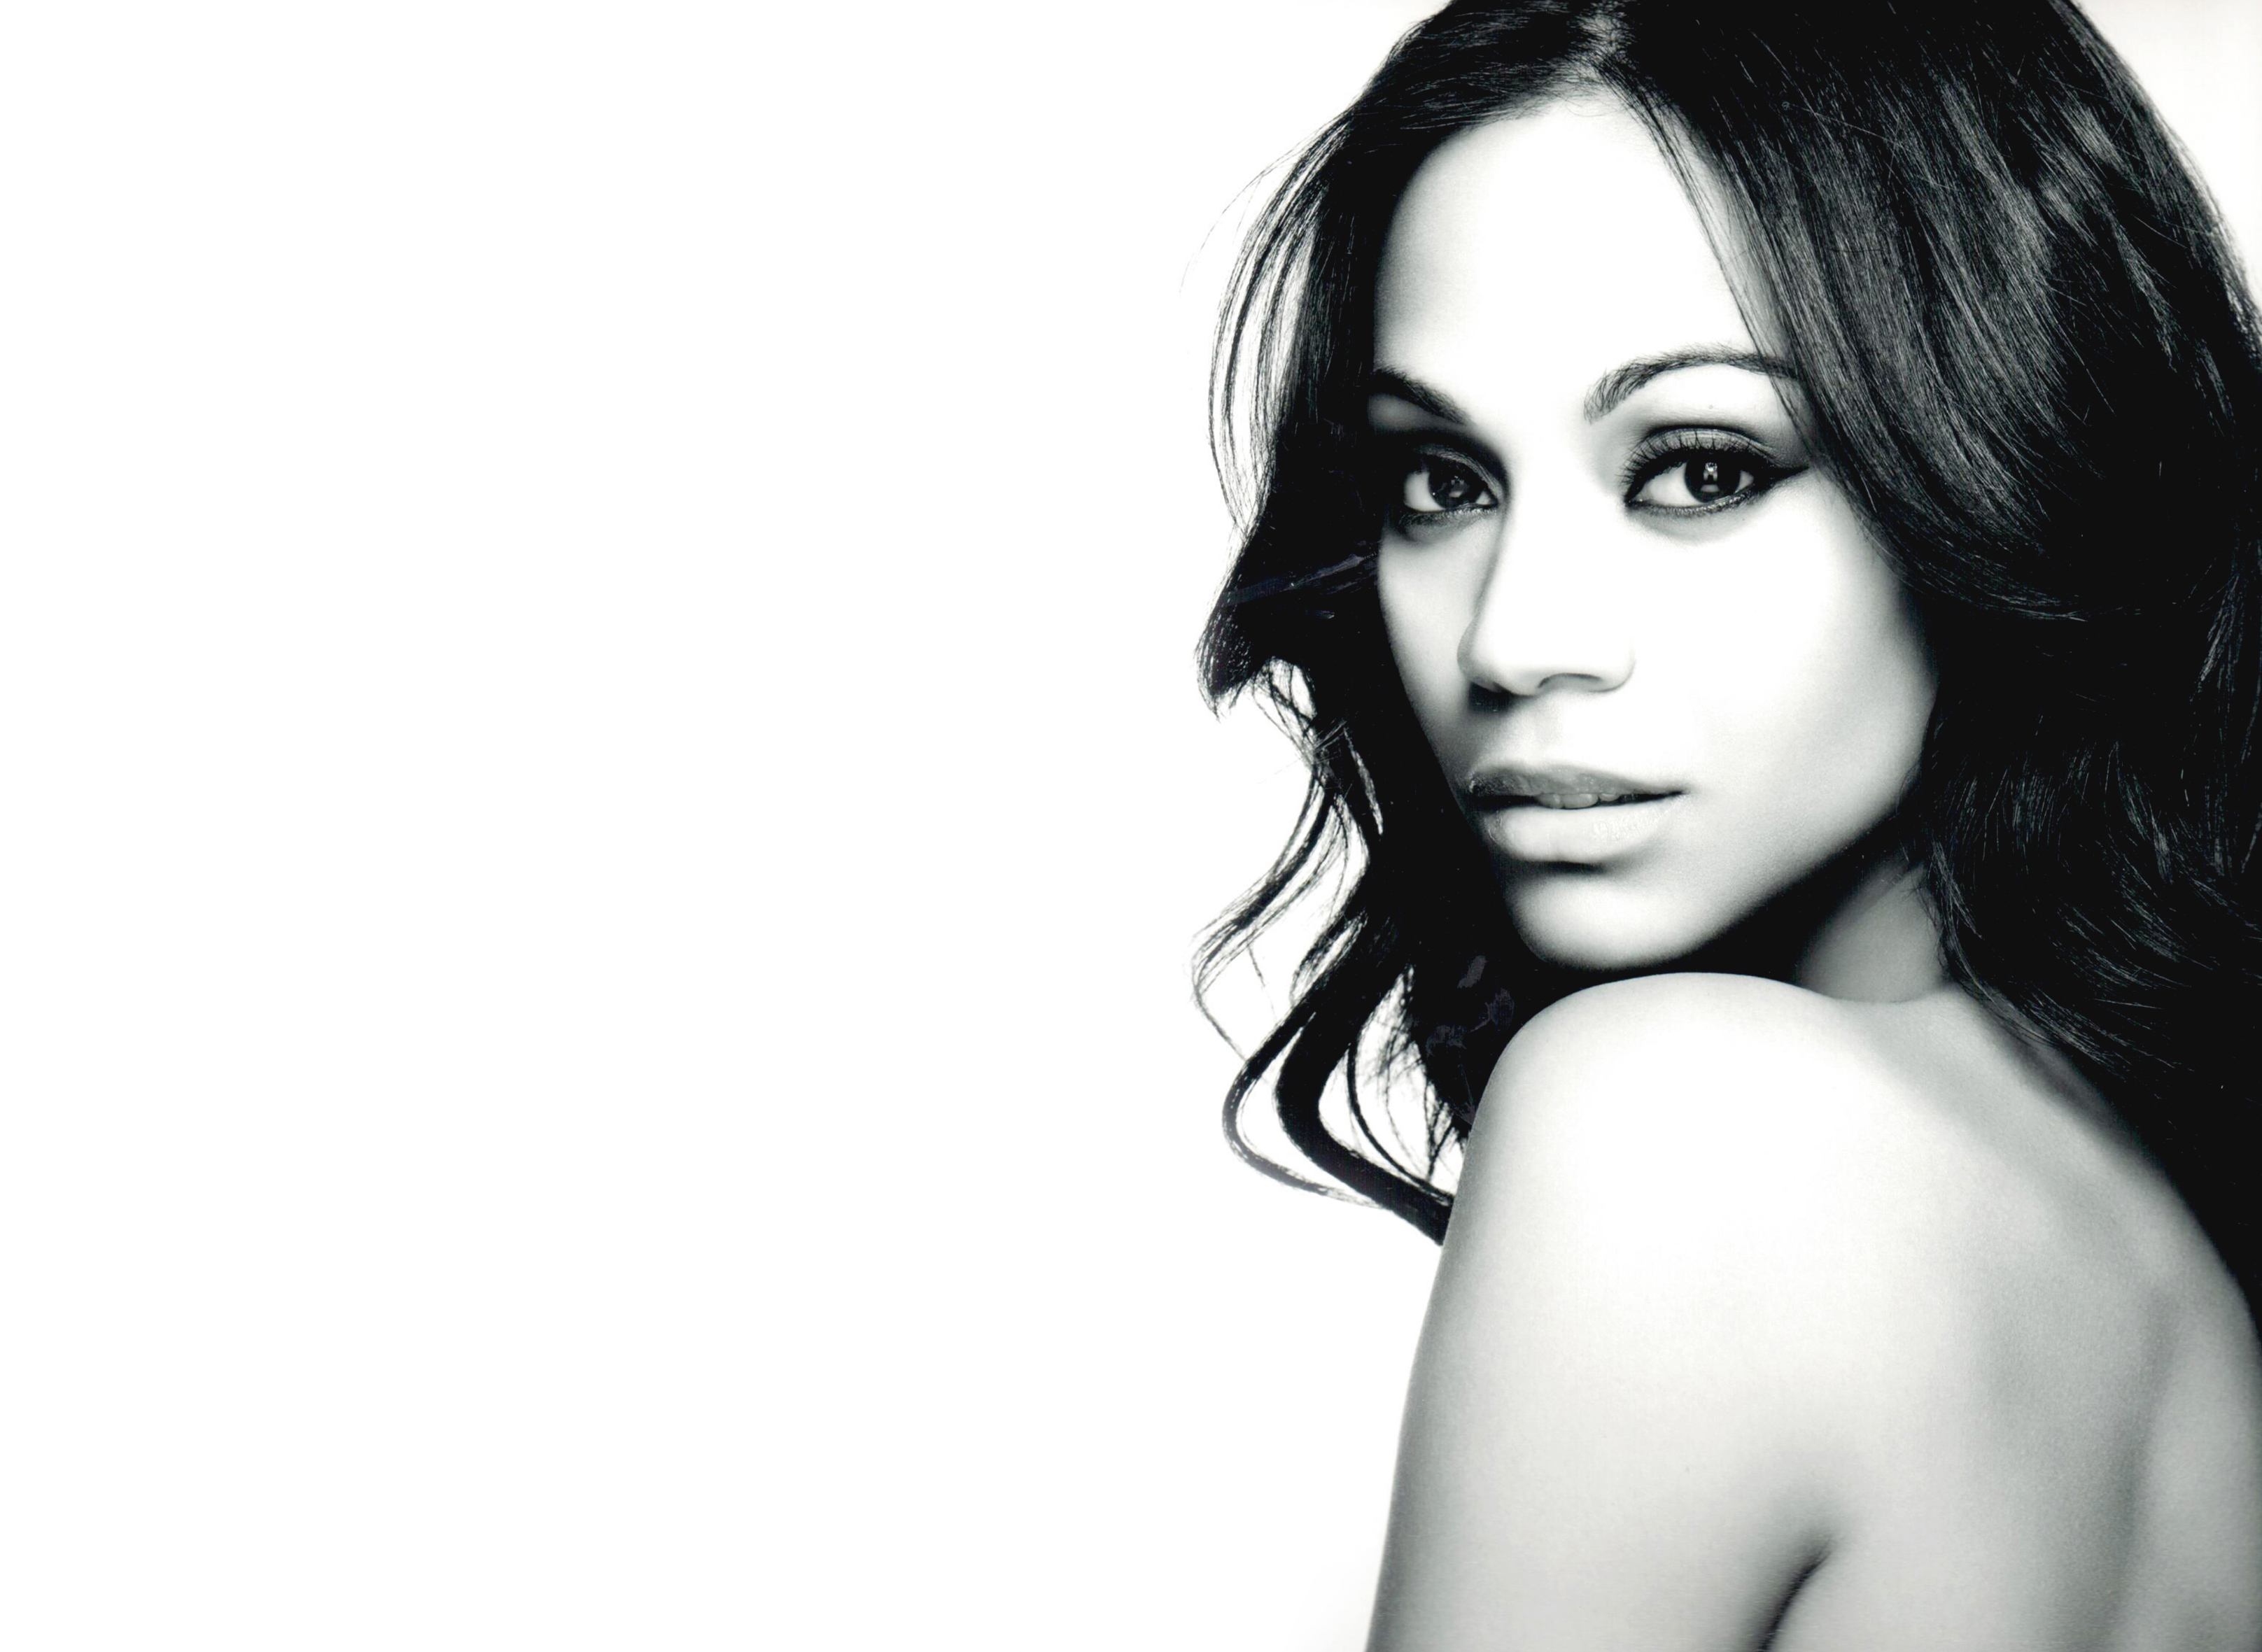 Zoe Saldana HD Wallpapers for desktop download